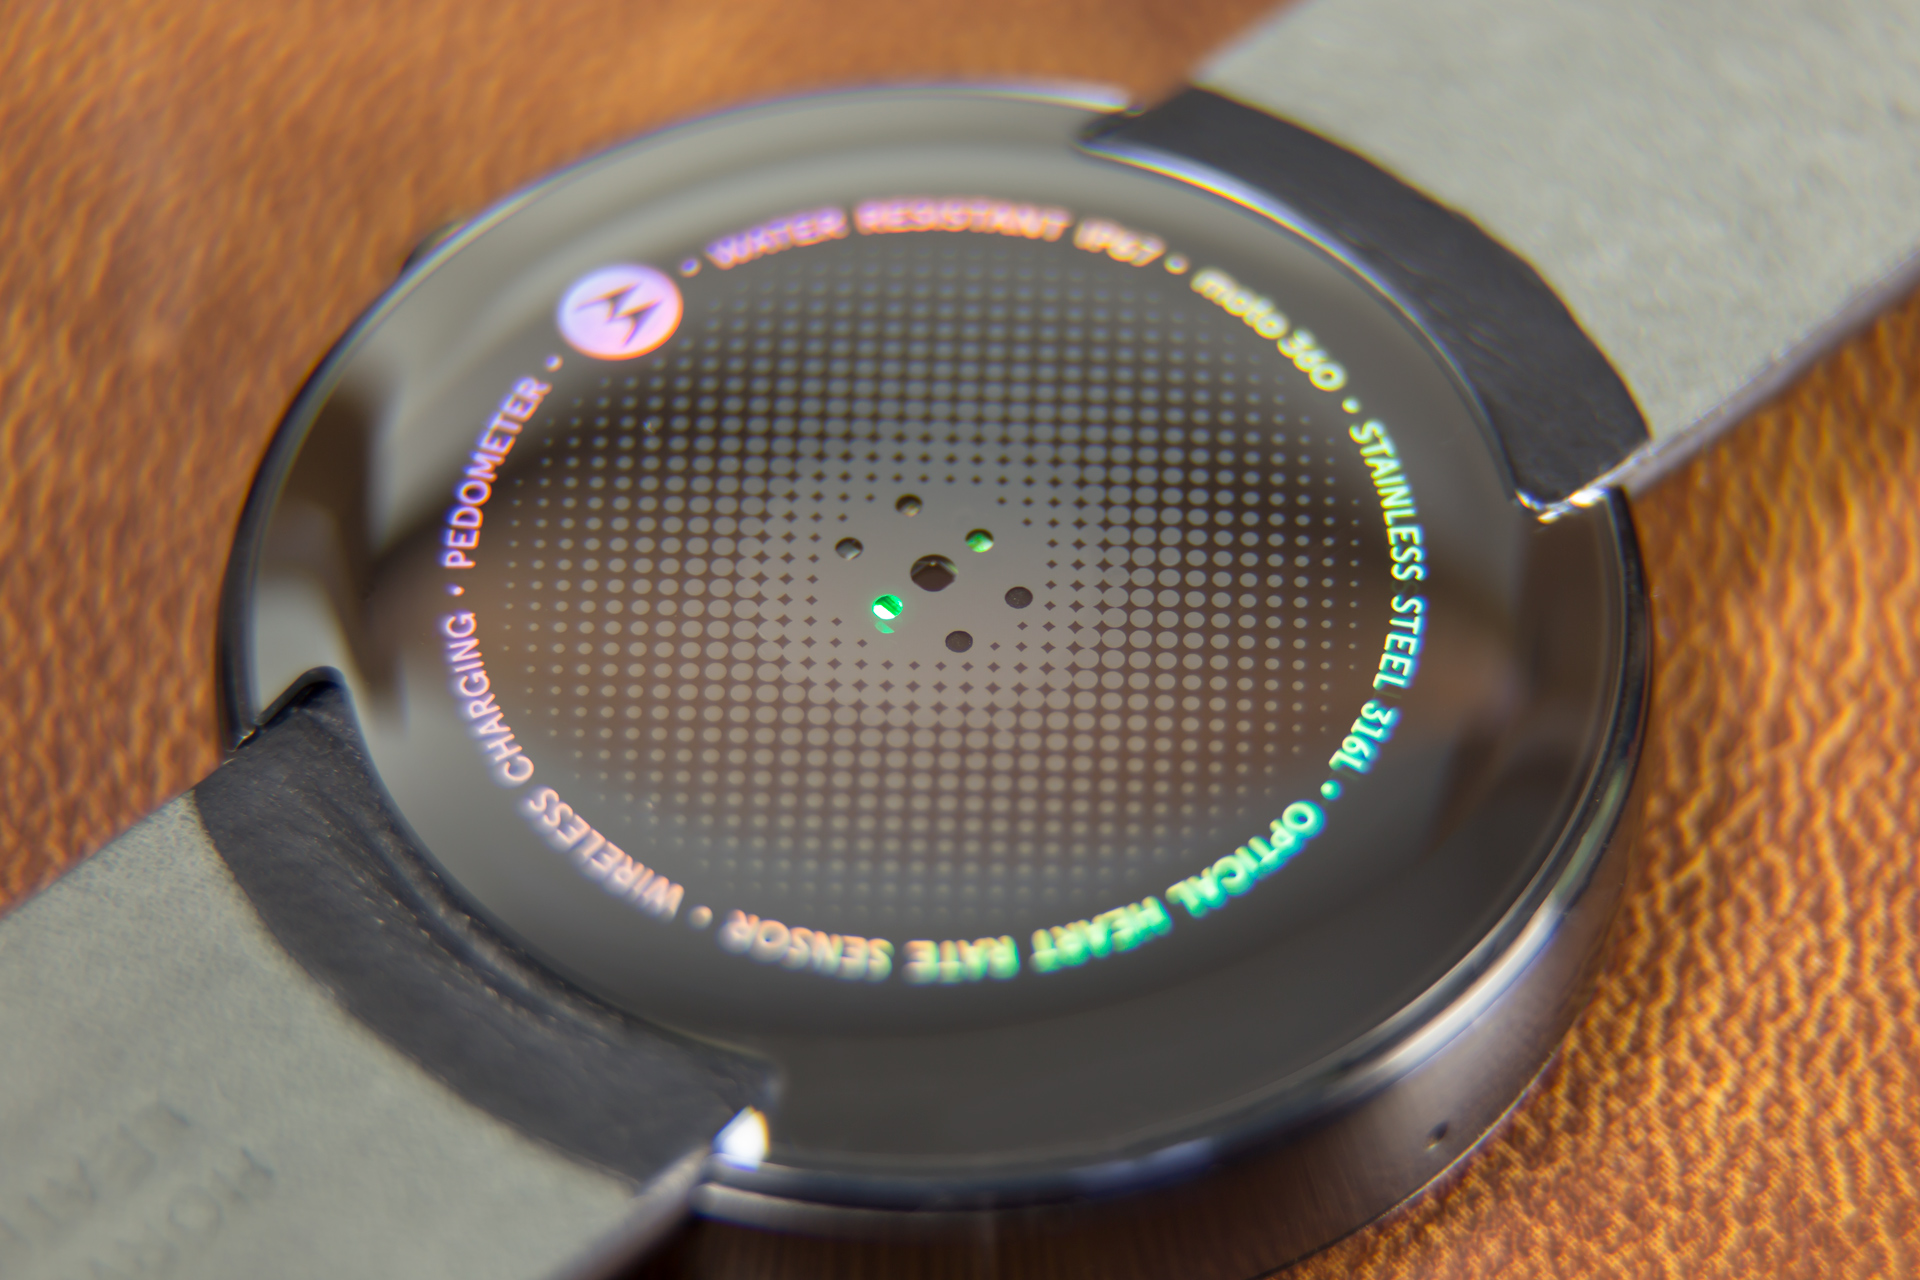 The back side of the watch. The green light and holes are for the optical heart rate sensor.